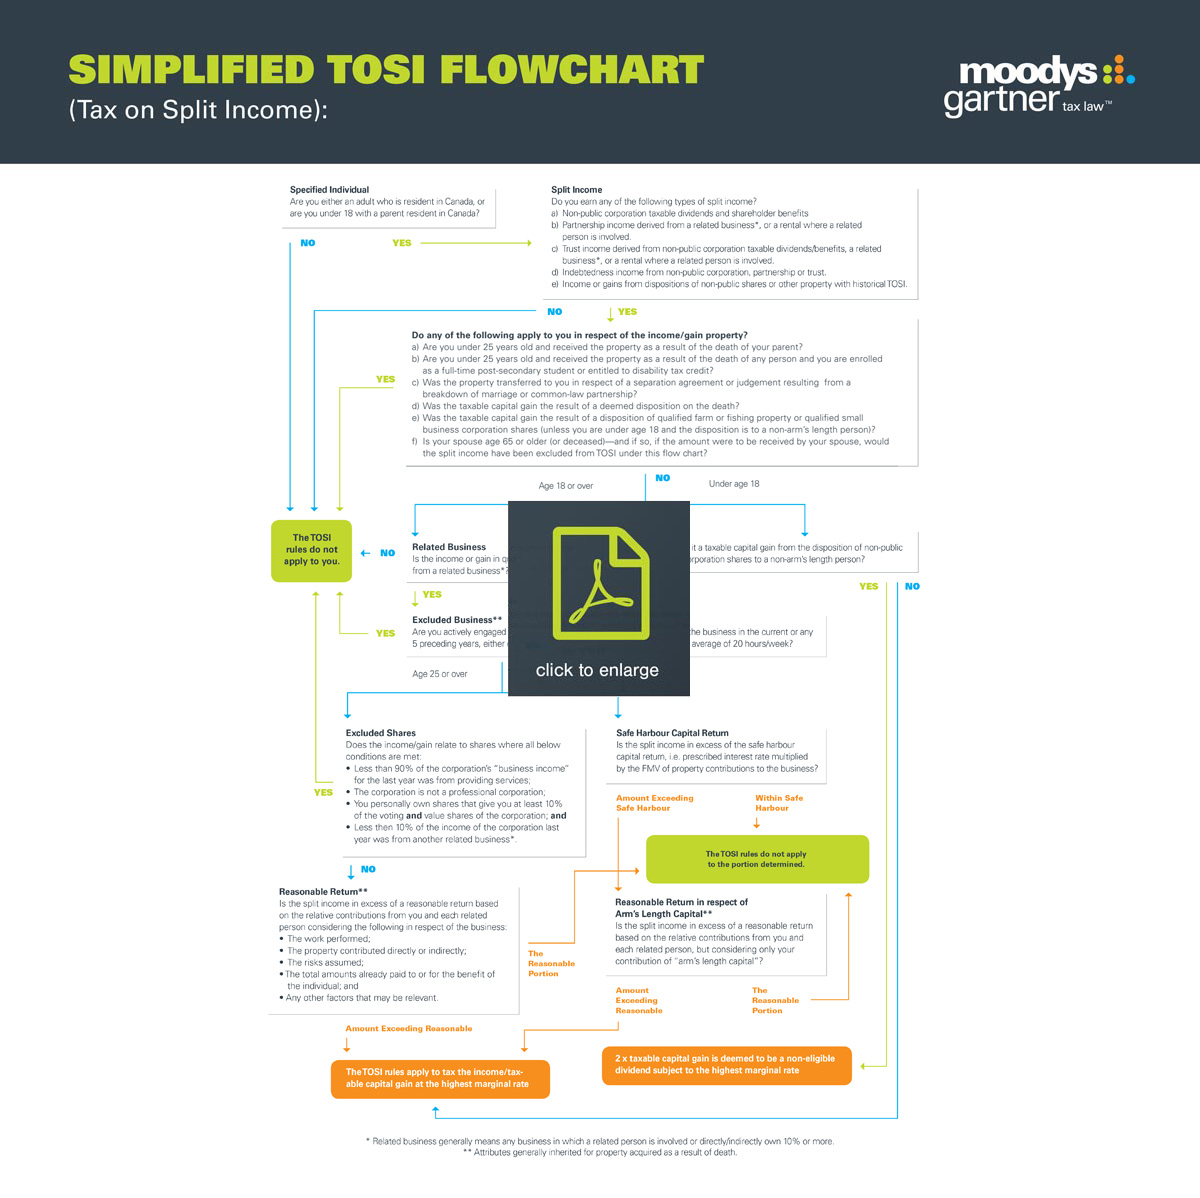 Tax on split income flowchart moodys gartner tax law weve created a simplified flow chart to help you navigate the various factors that may affect how the tosi applies to you and your family nvjuhfo Images